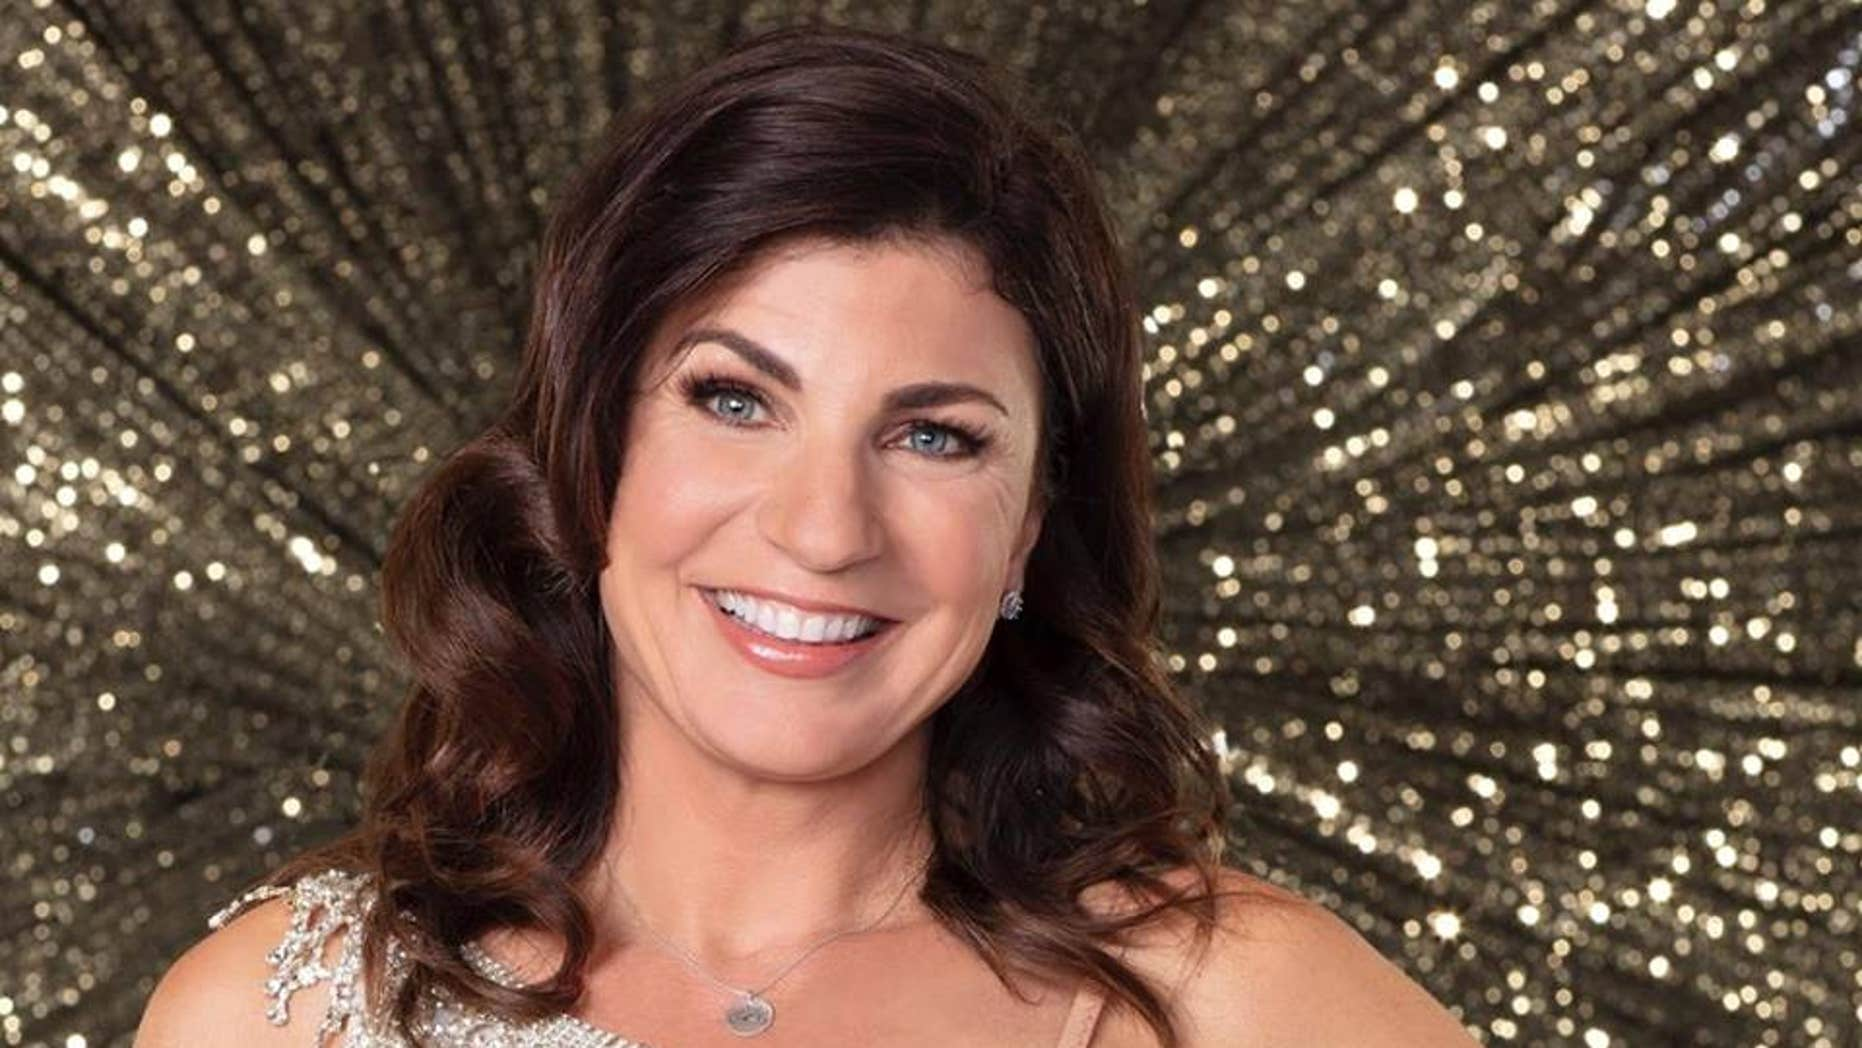 Danelle Umstead was the star who went home — and fans were left wondering if a phone voting problem was to blame.